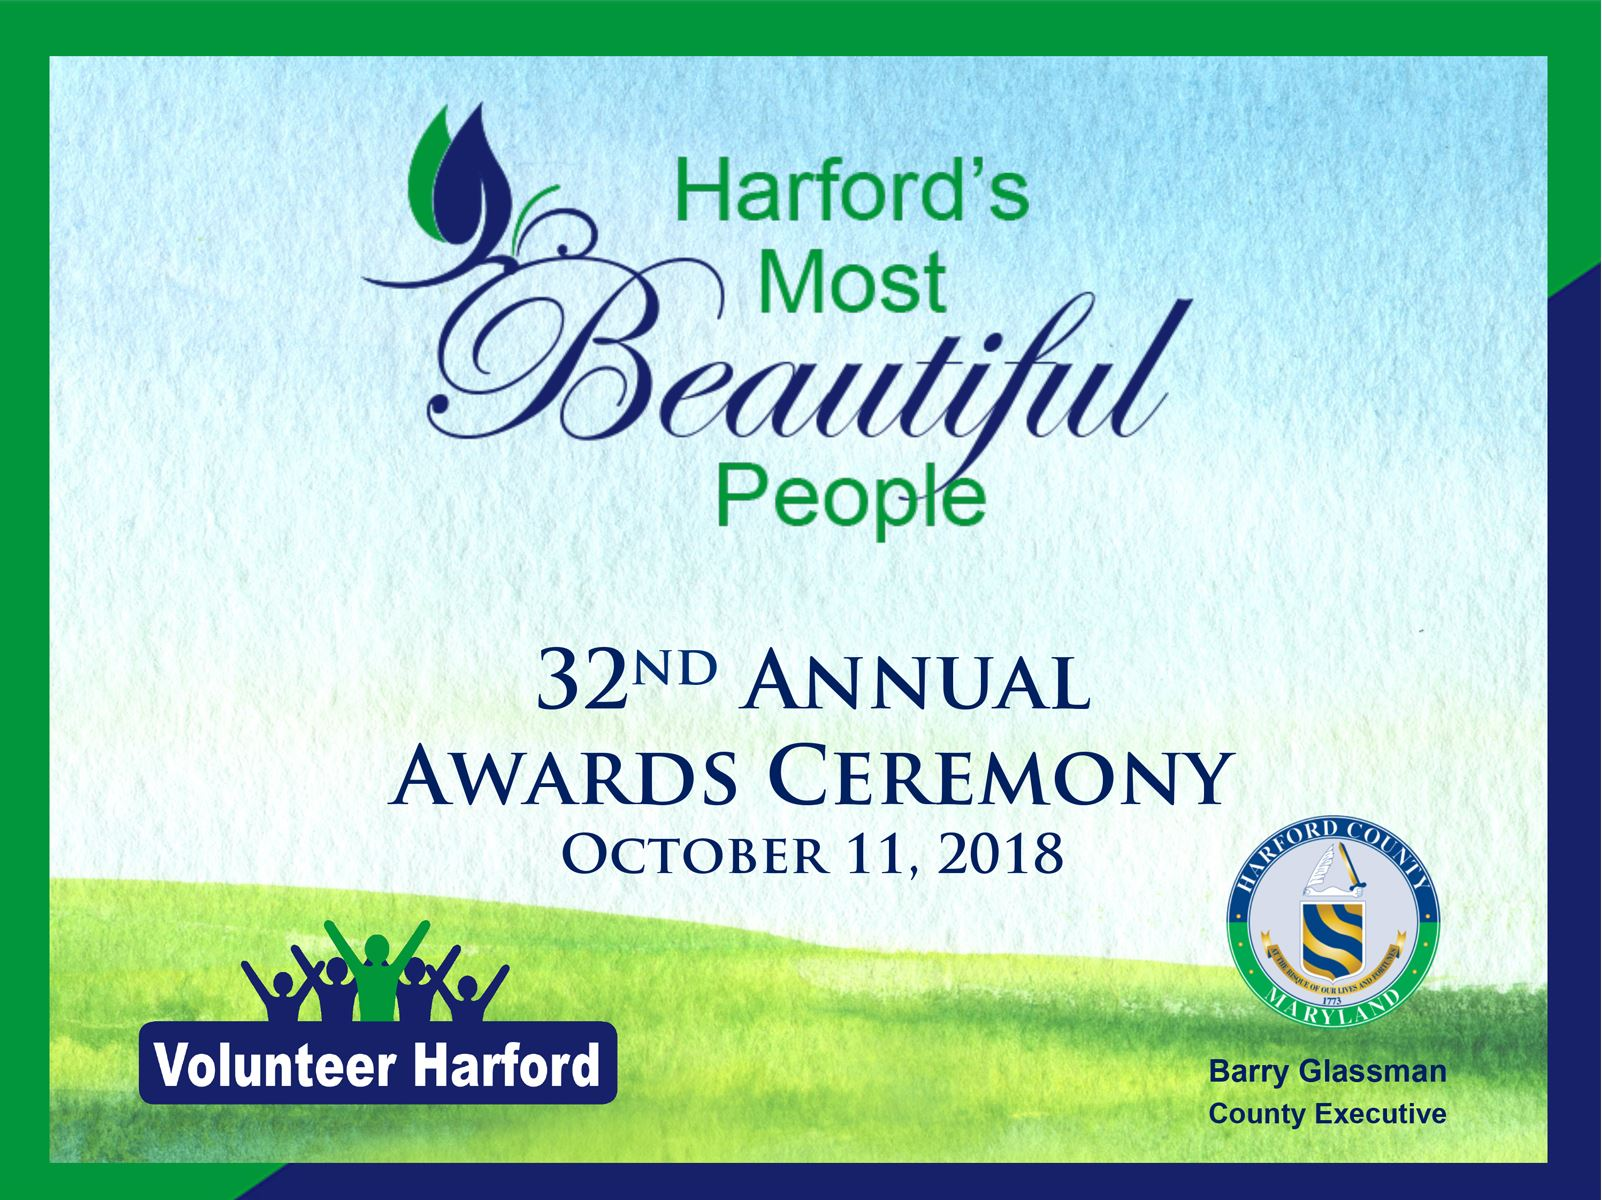 Harford's Most Beautiful ceremony October 11, 2018